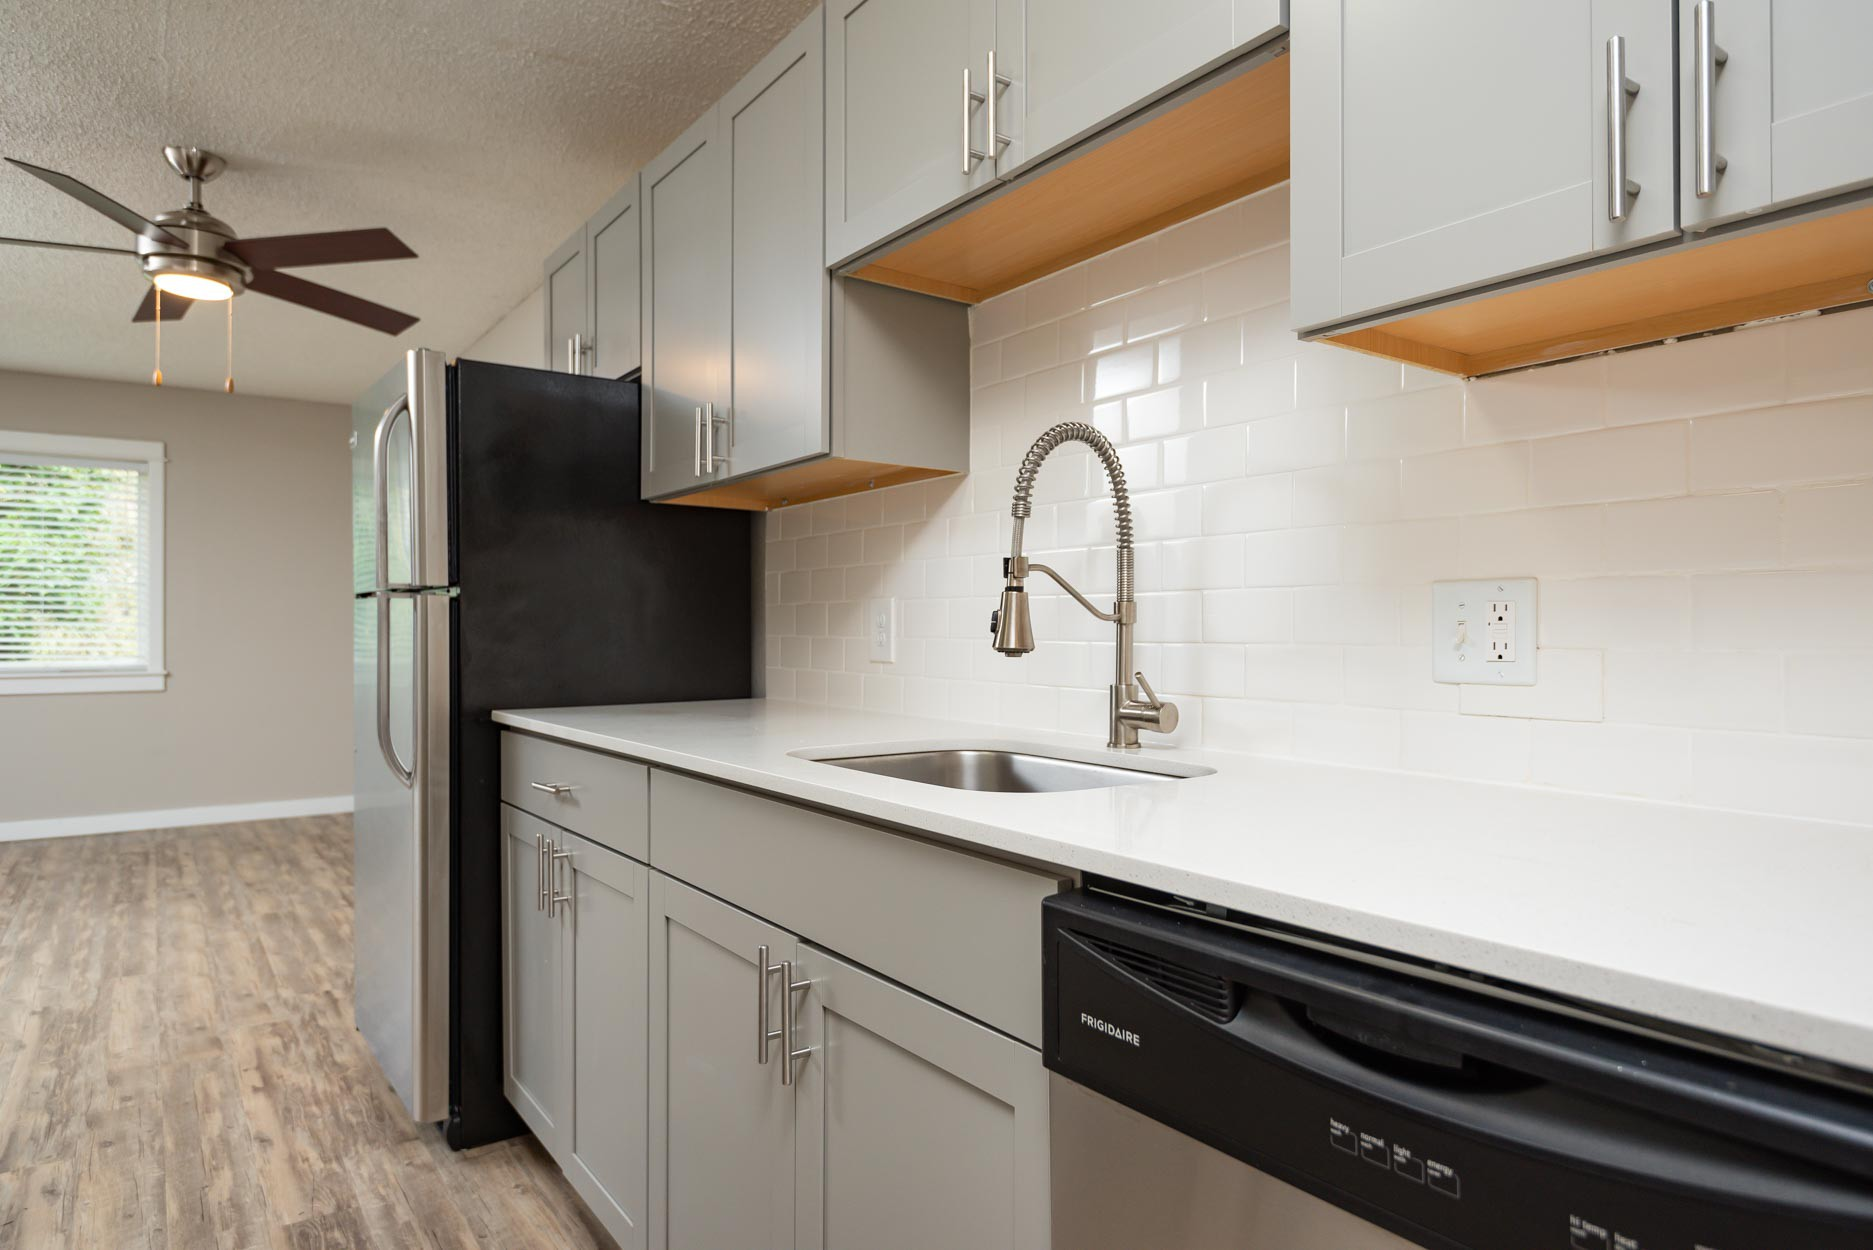 Apartments Near George Fox River Lofts for George Fox University Students in Newberg, OR